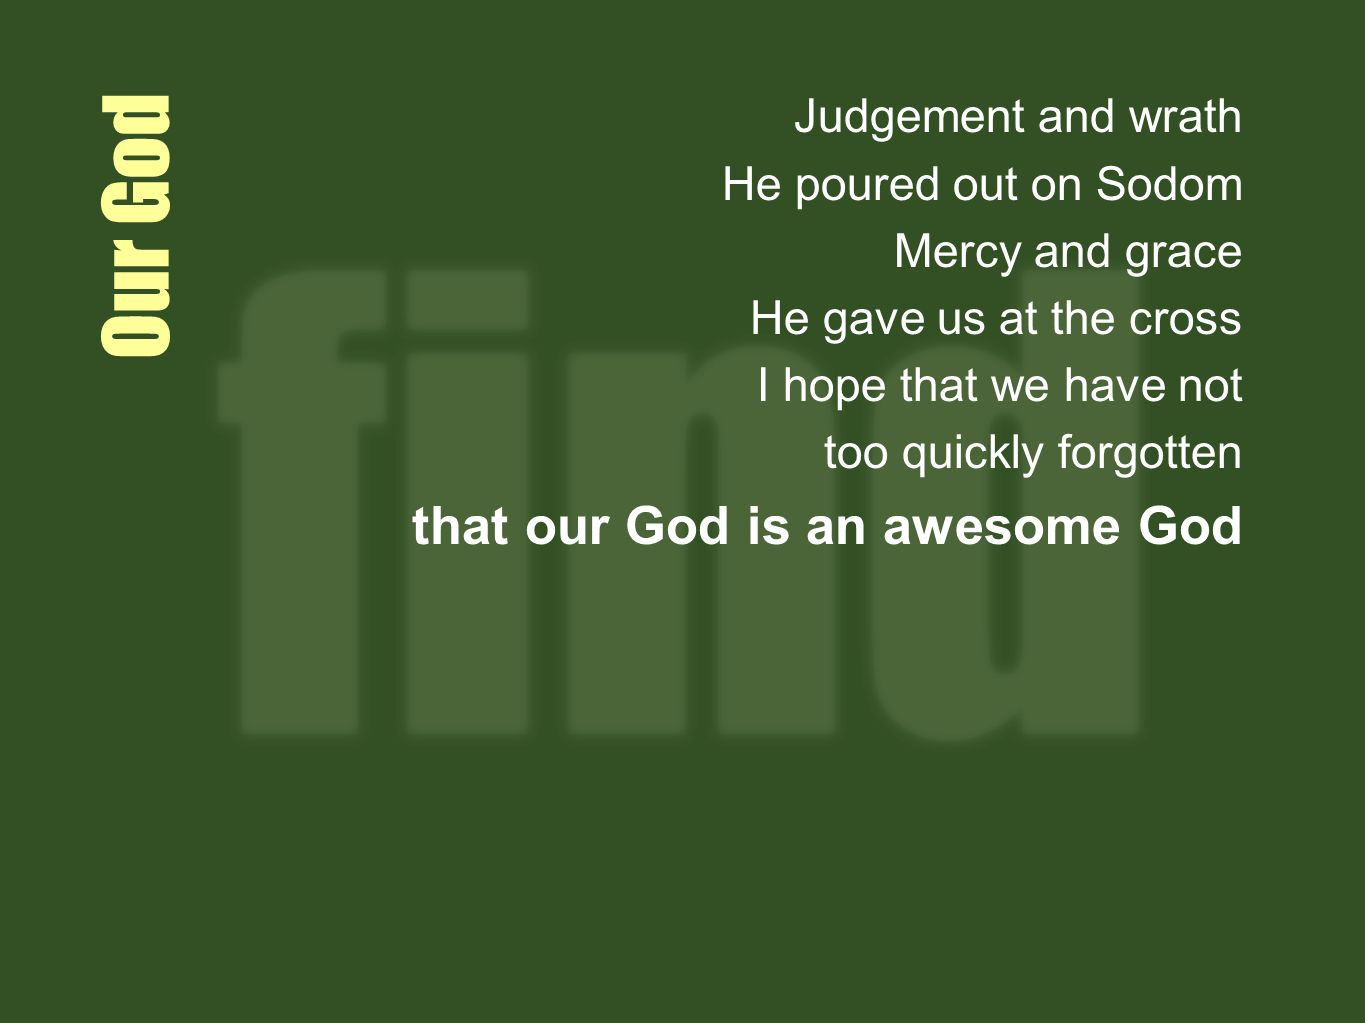 Our God that our God is an awesome God Judgement and wrath